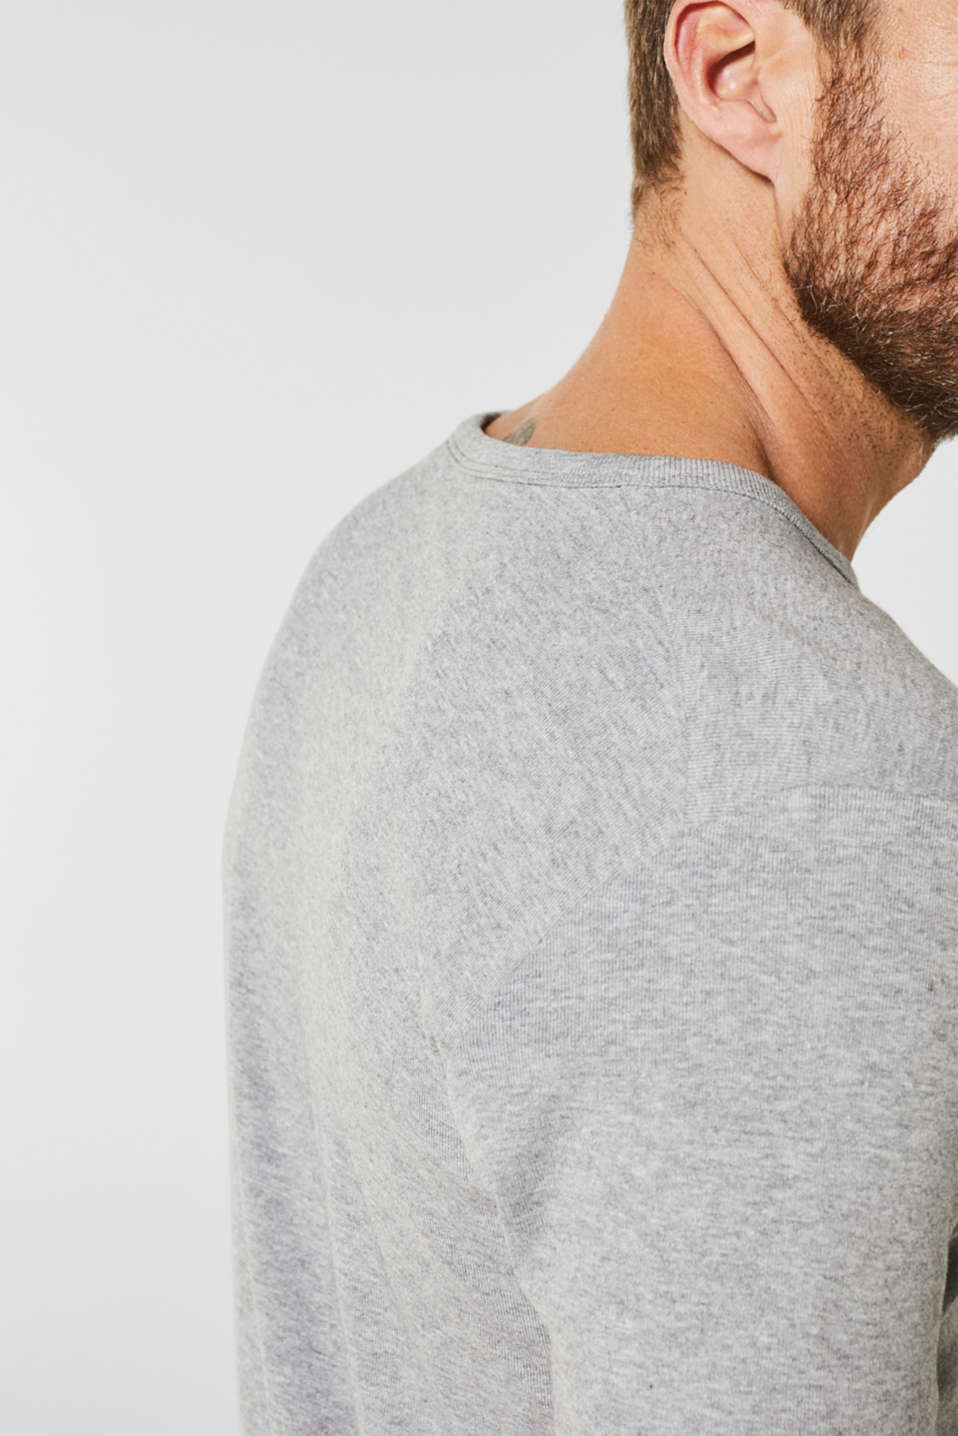 Ribbed T-shirt in blended cotton, MEDIUM GREY 5, detail image number 1